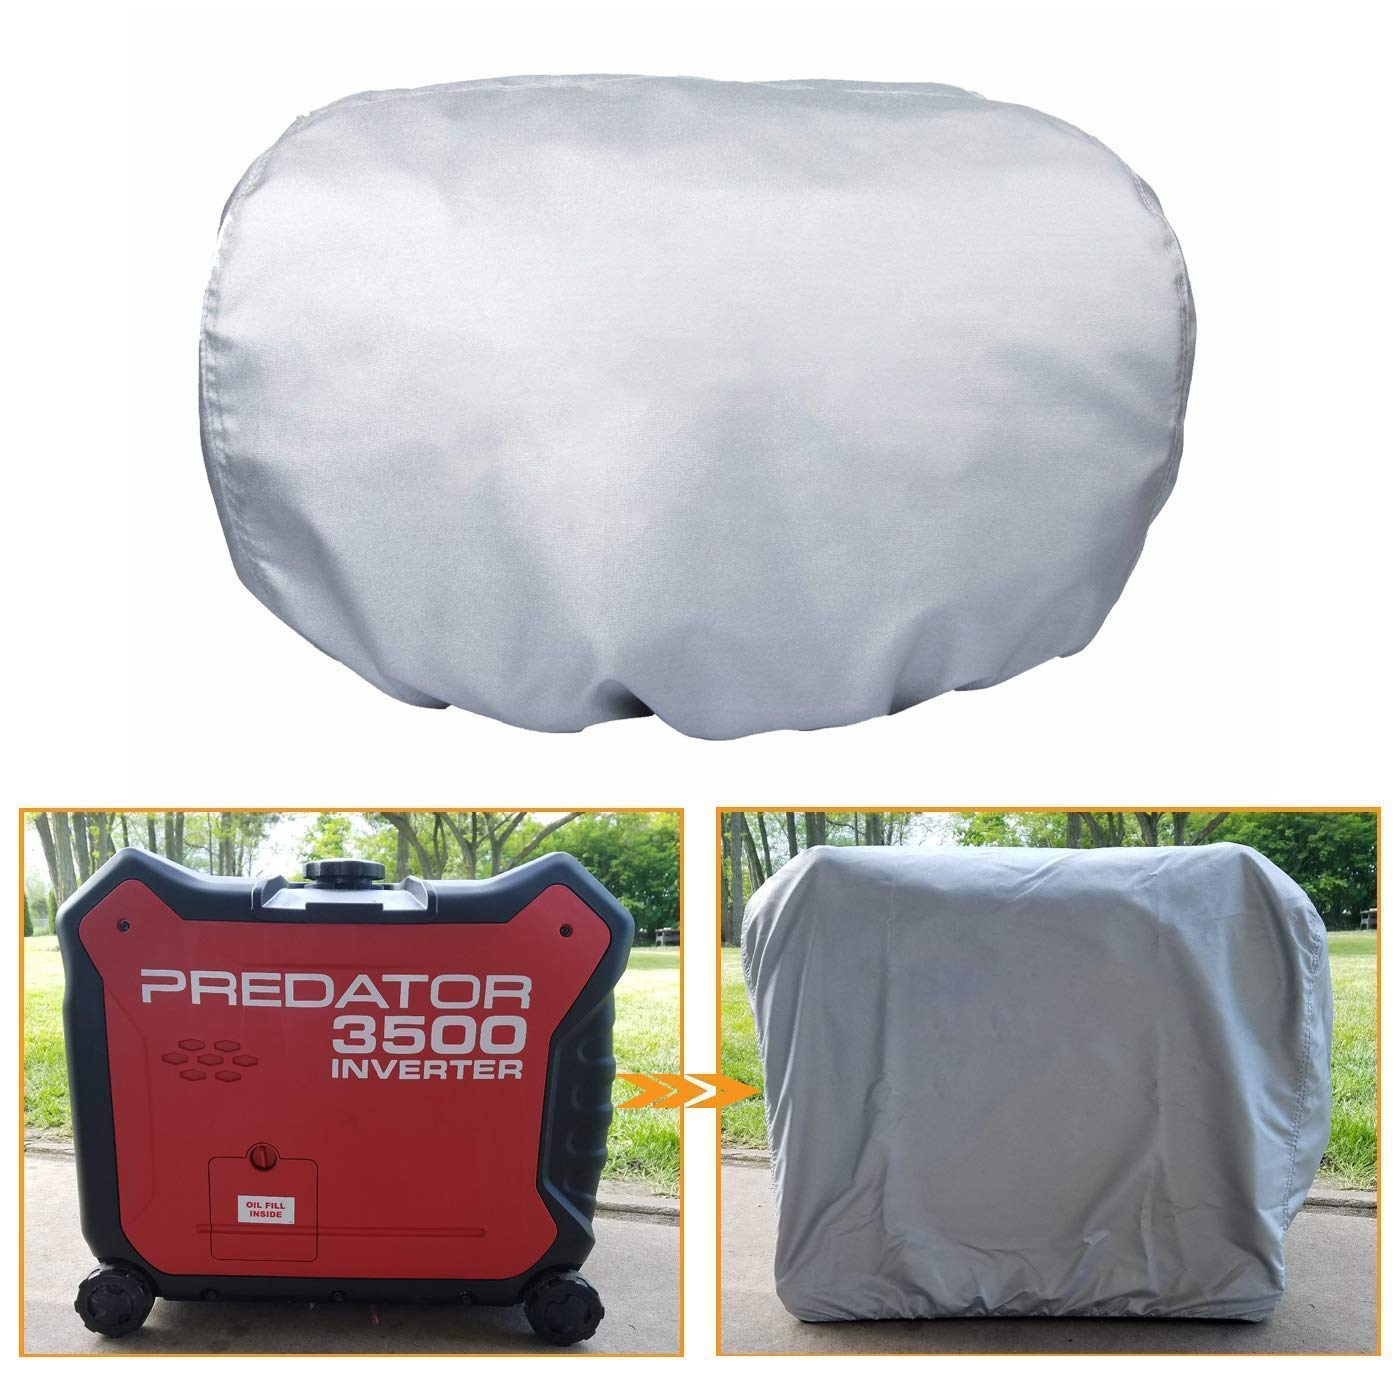 Matler Generator Cover for Honda EU3000is & Predator 3500, All Season Outdoor Storage Cover,Protect Against Dust, Debris, Rain Weather